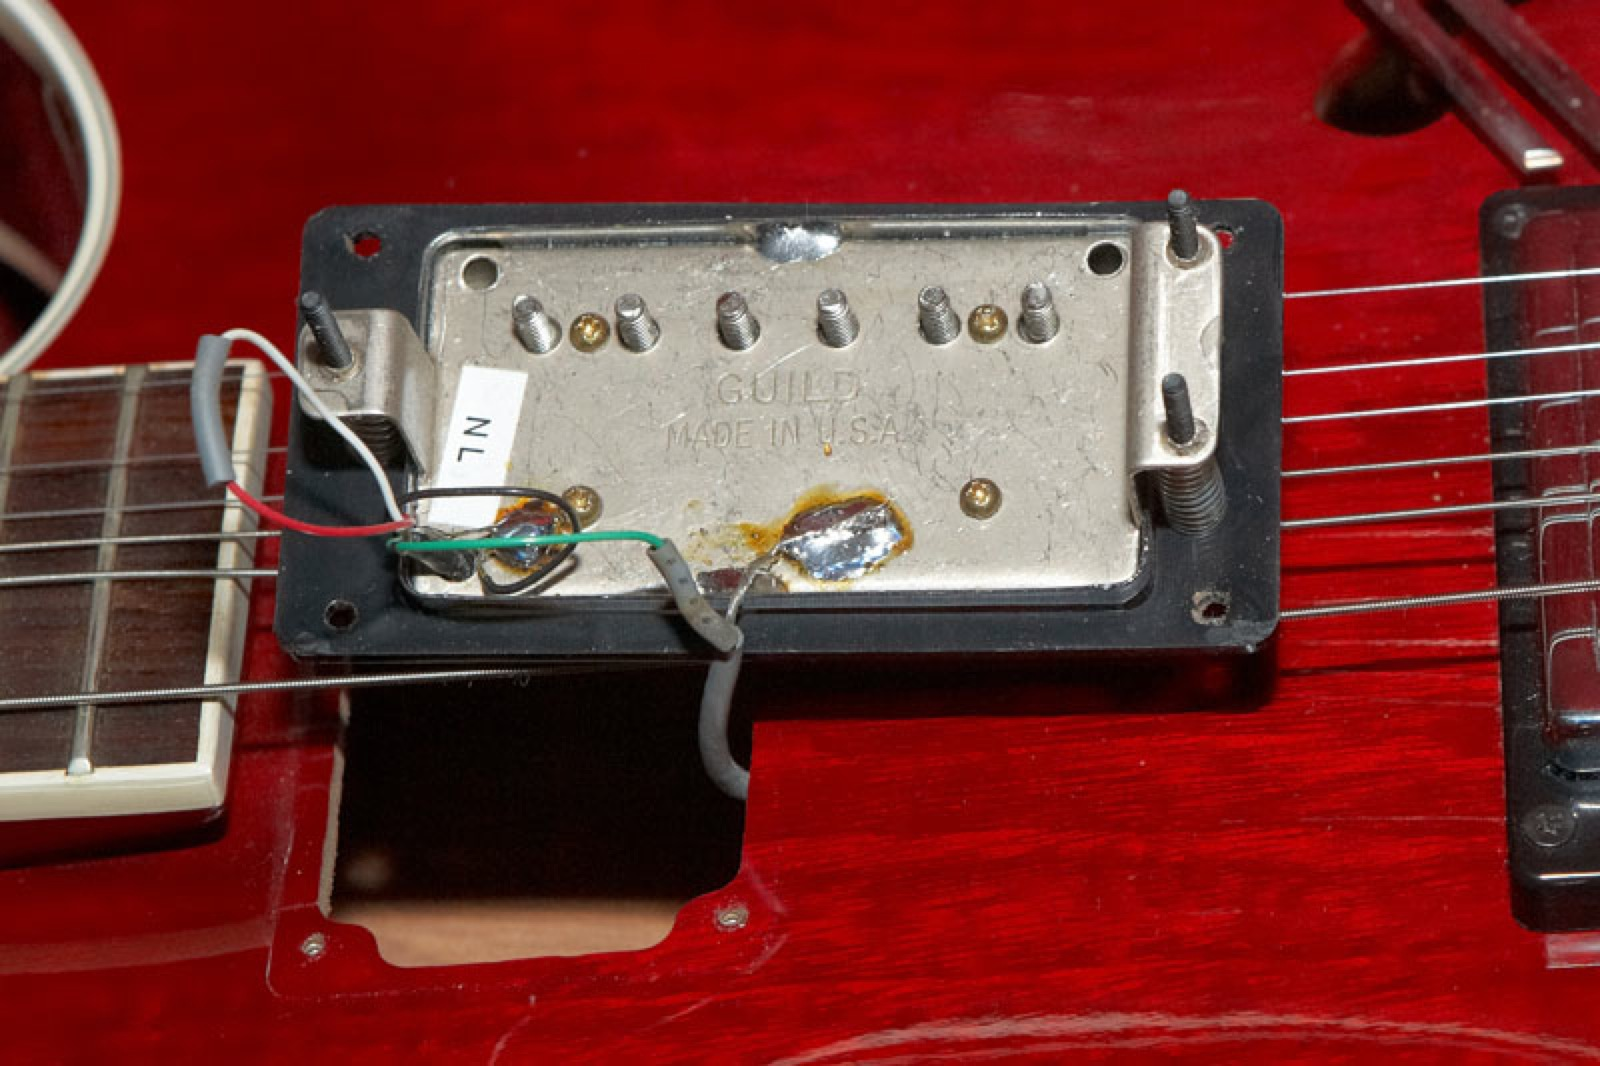 Guild Full Sized Hb1 And Sd1 Pickup Variations Gads Ramblings Active Guitar Wiring Diagram I Would Describe These Pickups As Looking Like Hb1s Without The Solder Terminals Indeed According To Quote Above Covers Back Plates Were